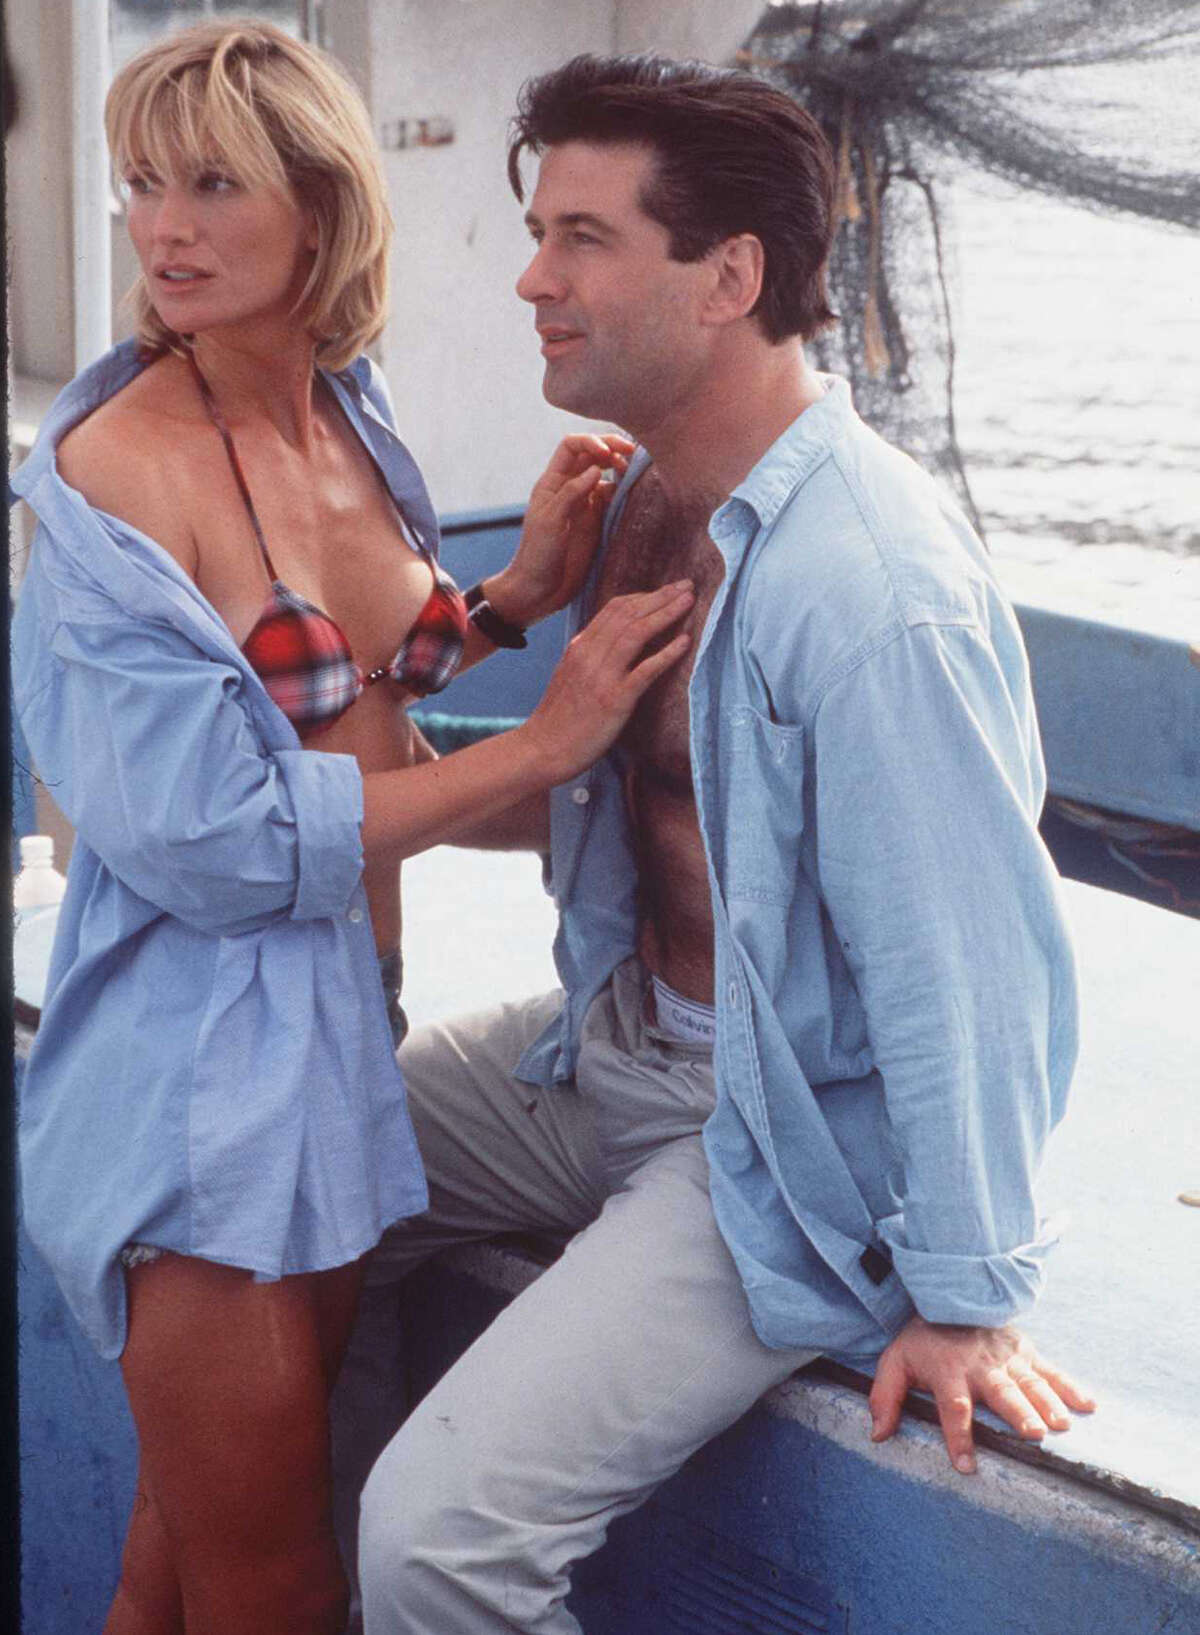 Alec Baldwin showed some chest in the unmemorable 1996 movie